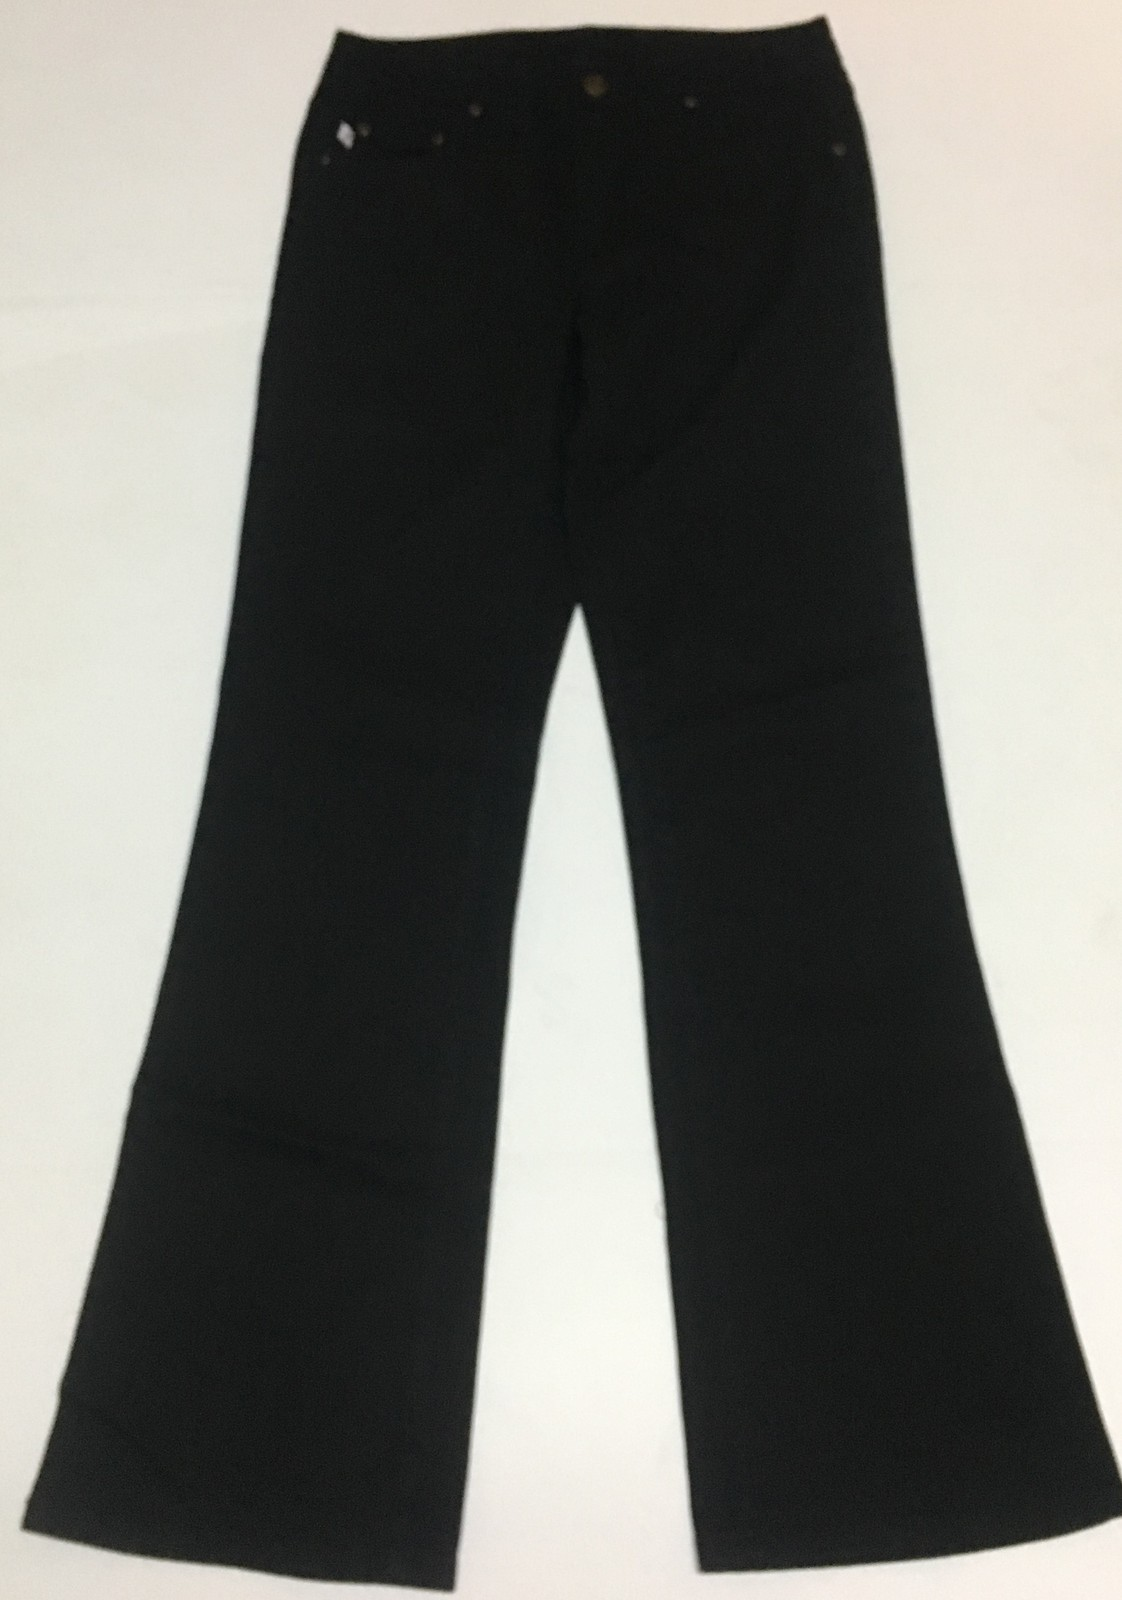 Bobbie Brooks Black Jeans NWT Sz 8 Average